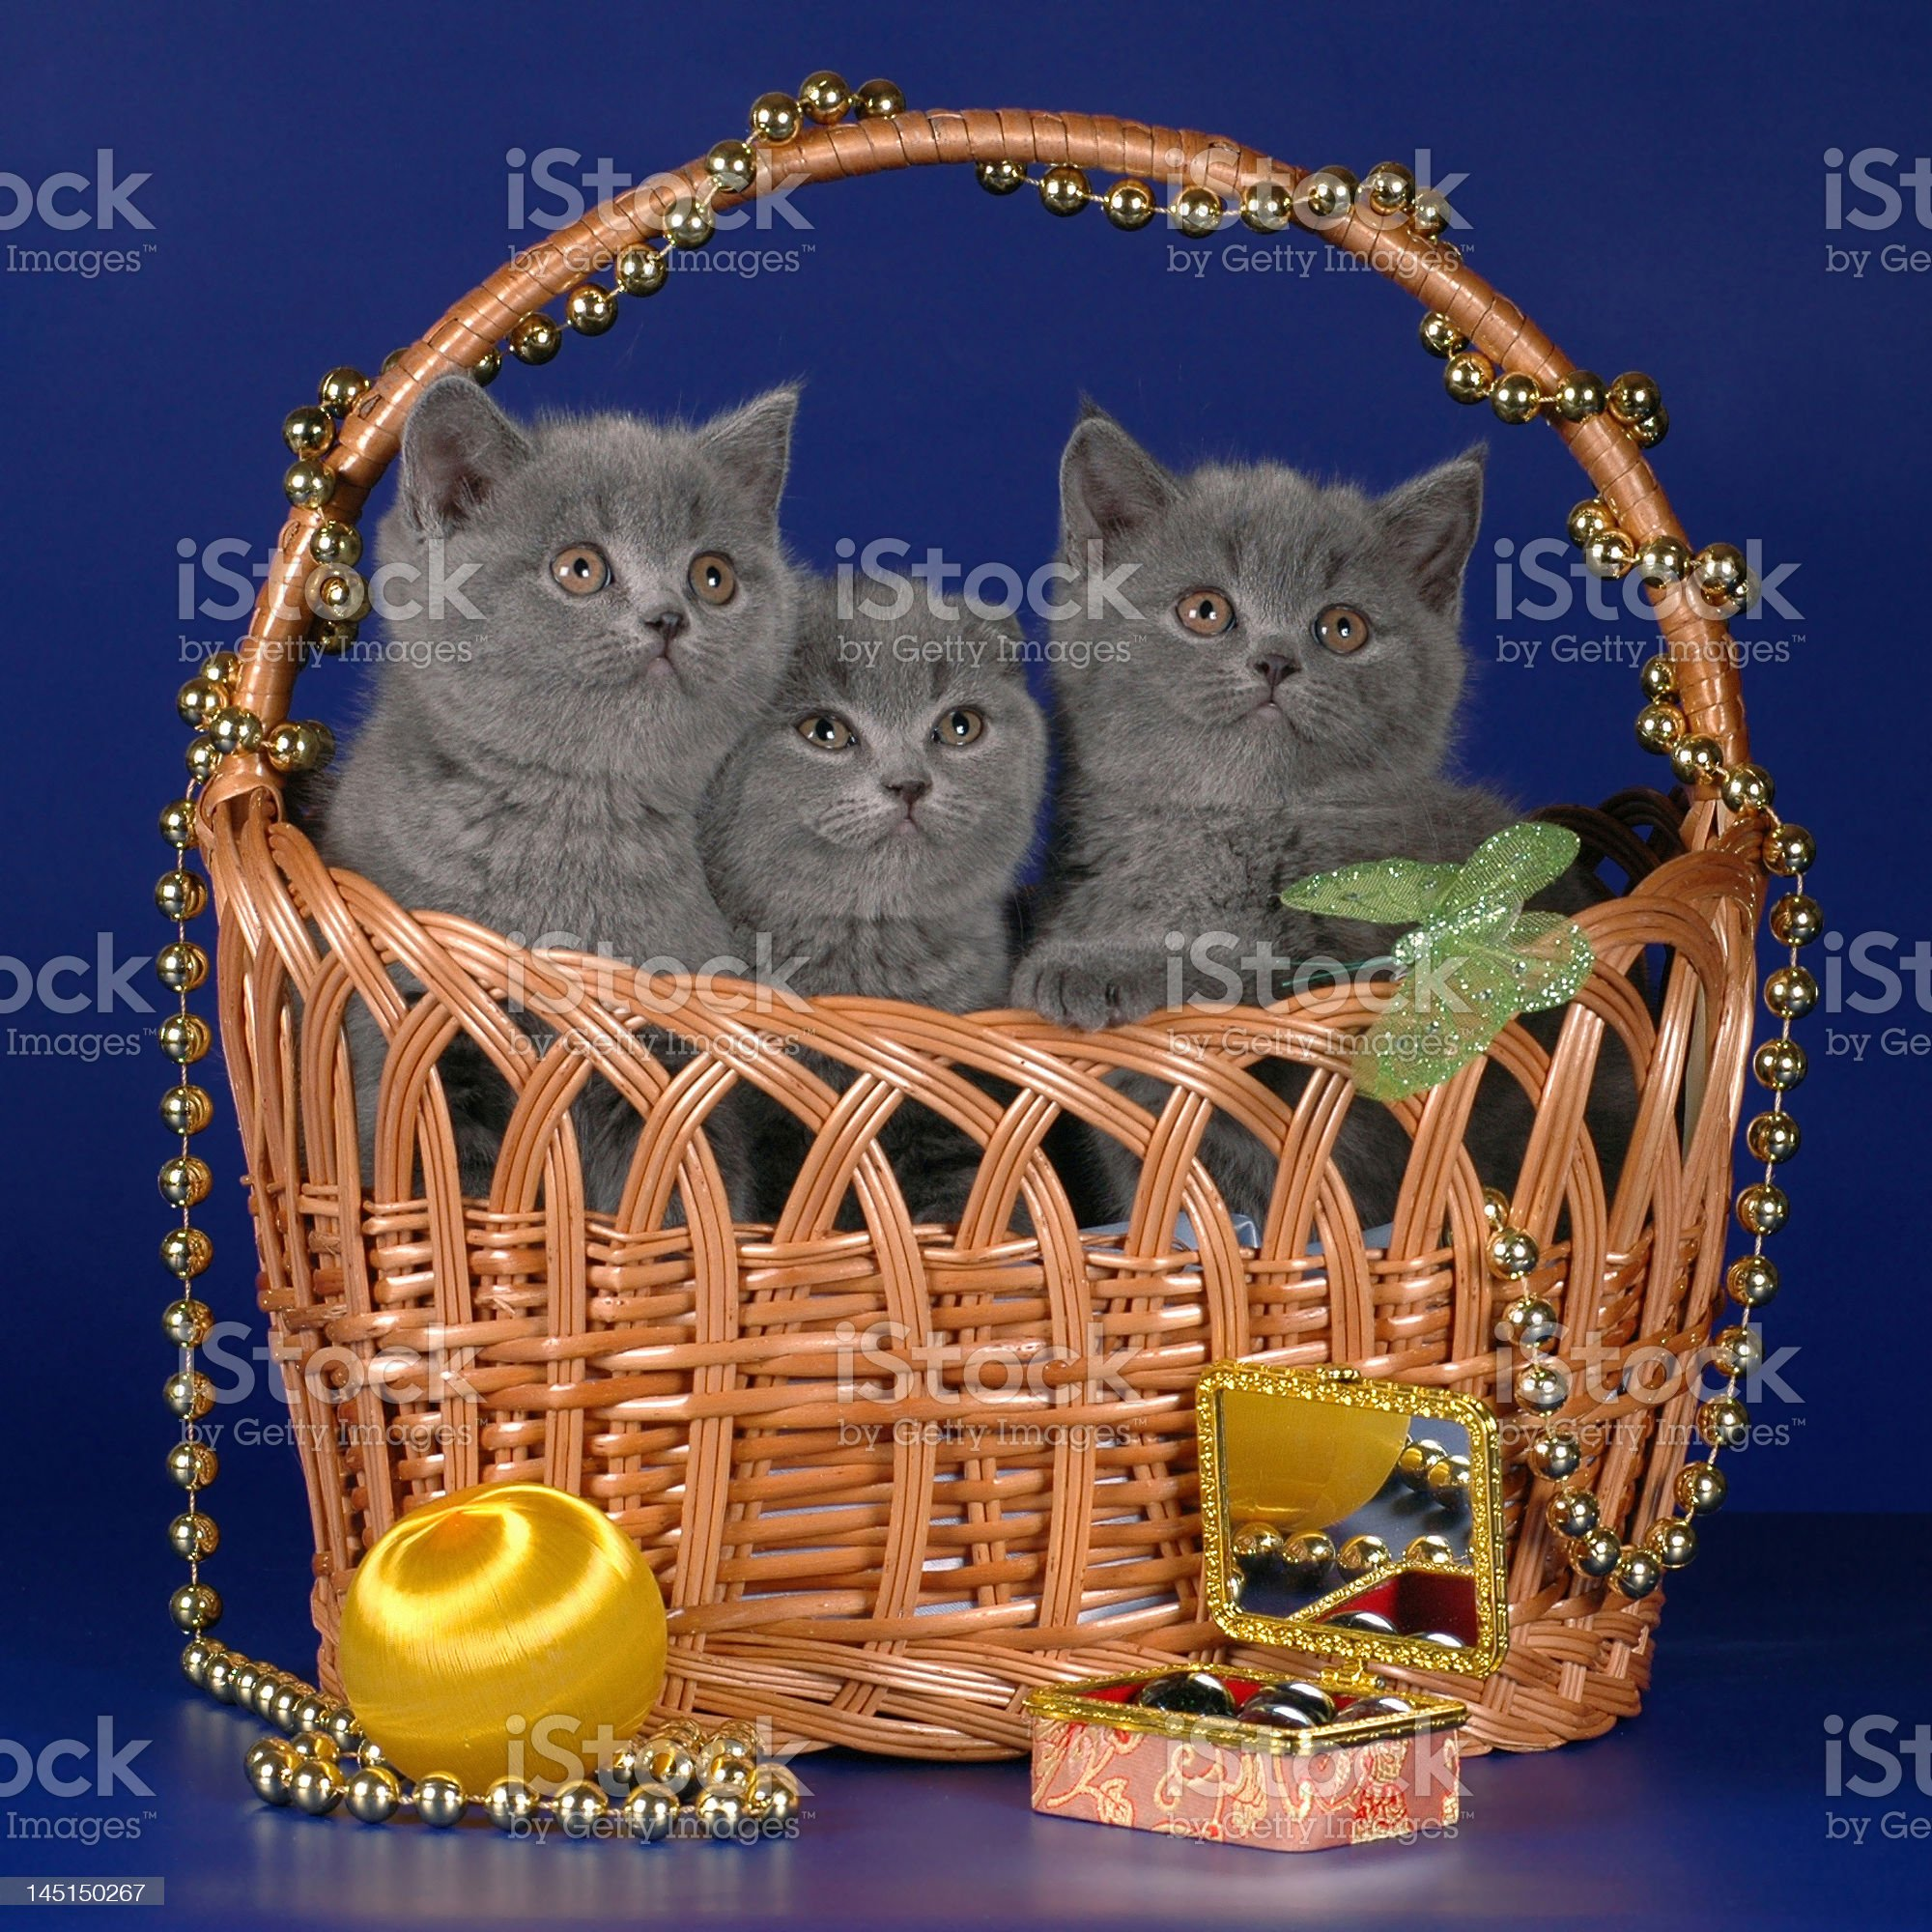 Scottish kittens in the basket royalty-free stock photo